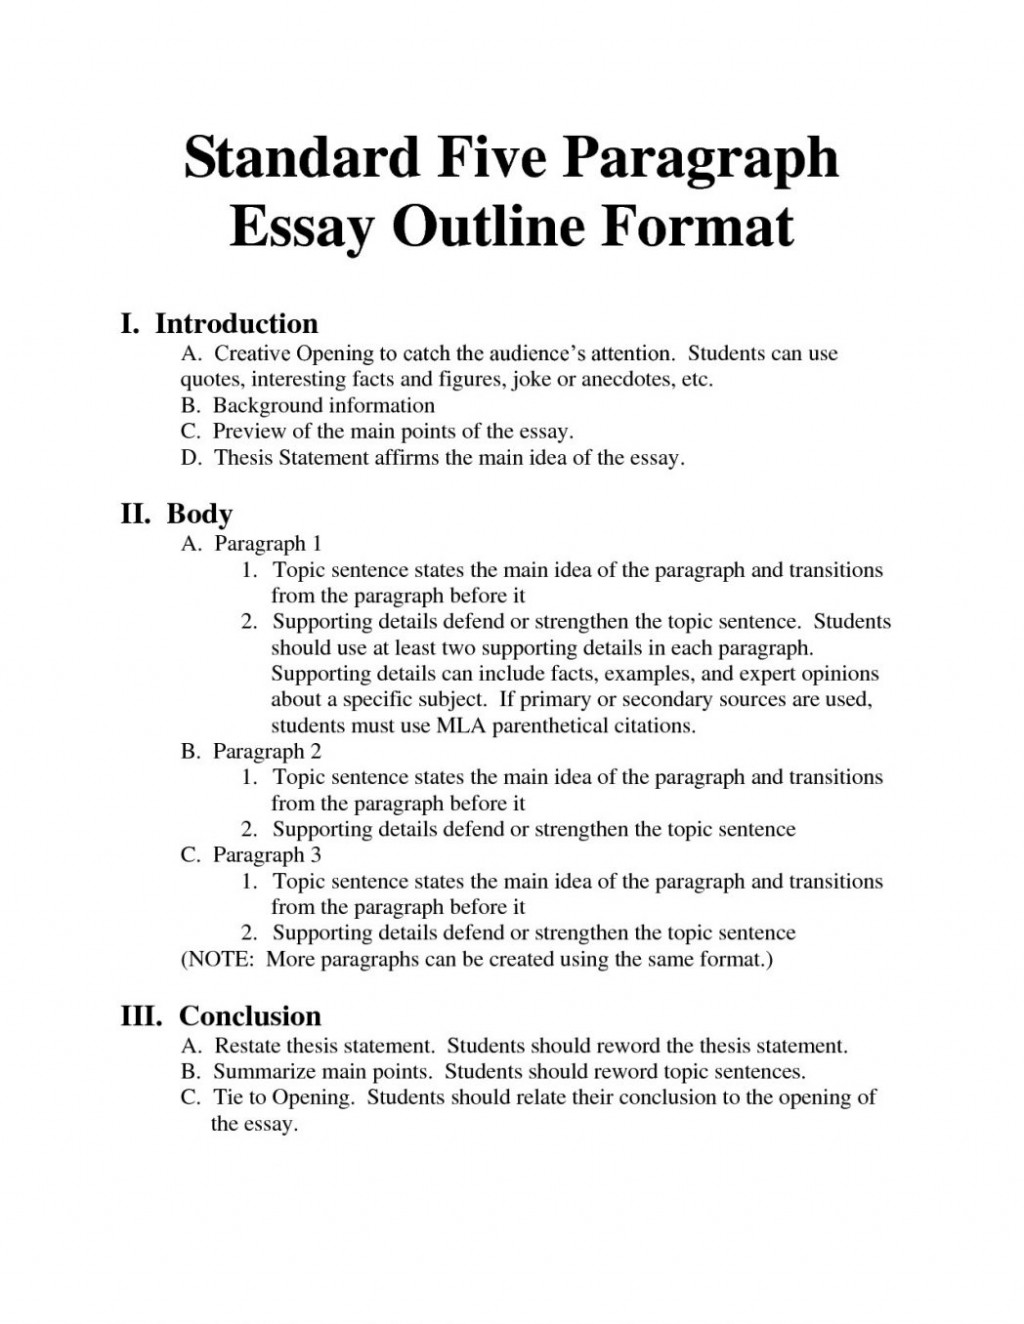 015 Conclusion Maker For Essays Word Rubric Template New Outline Essay Jose Mulinohouse Online 1048x1356 Staggering Large